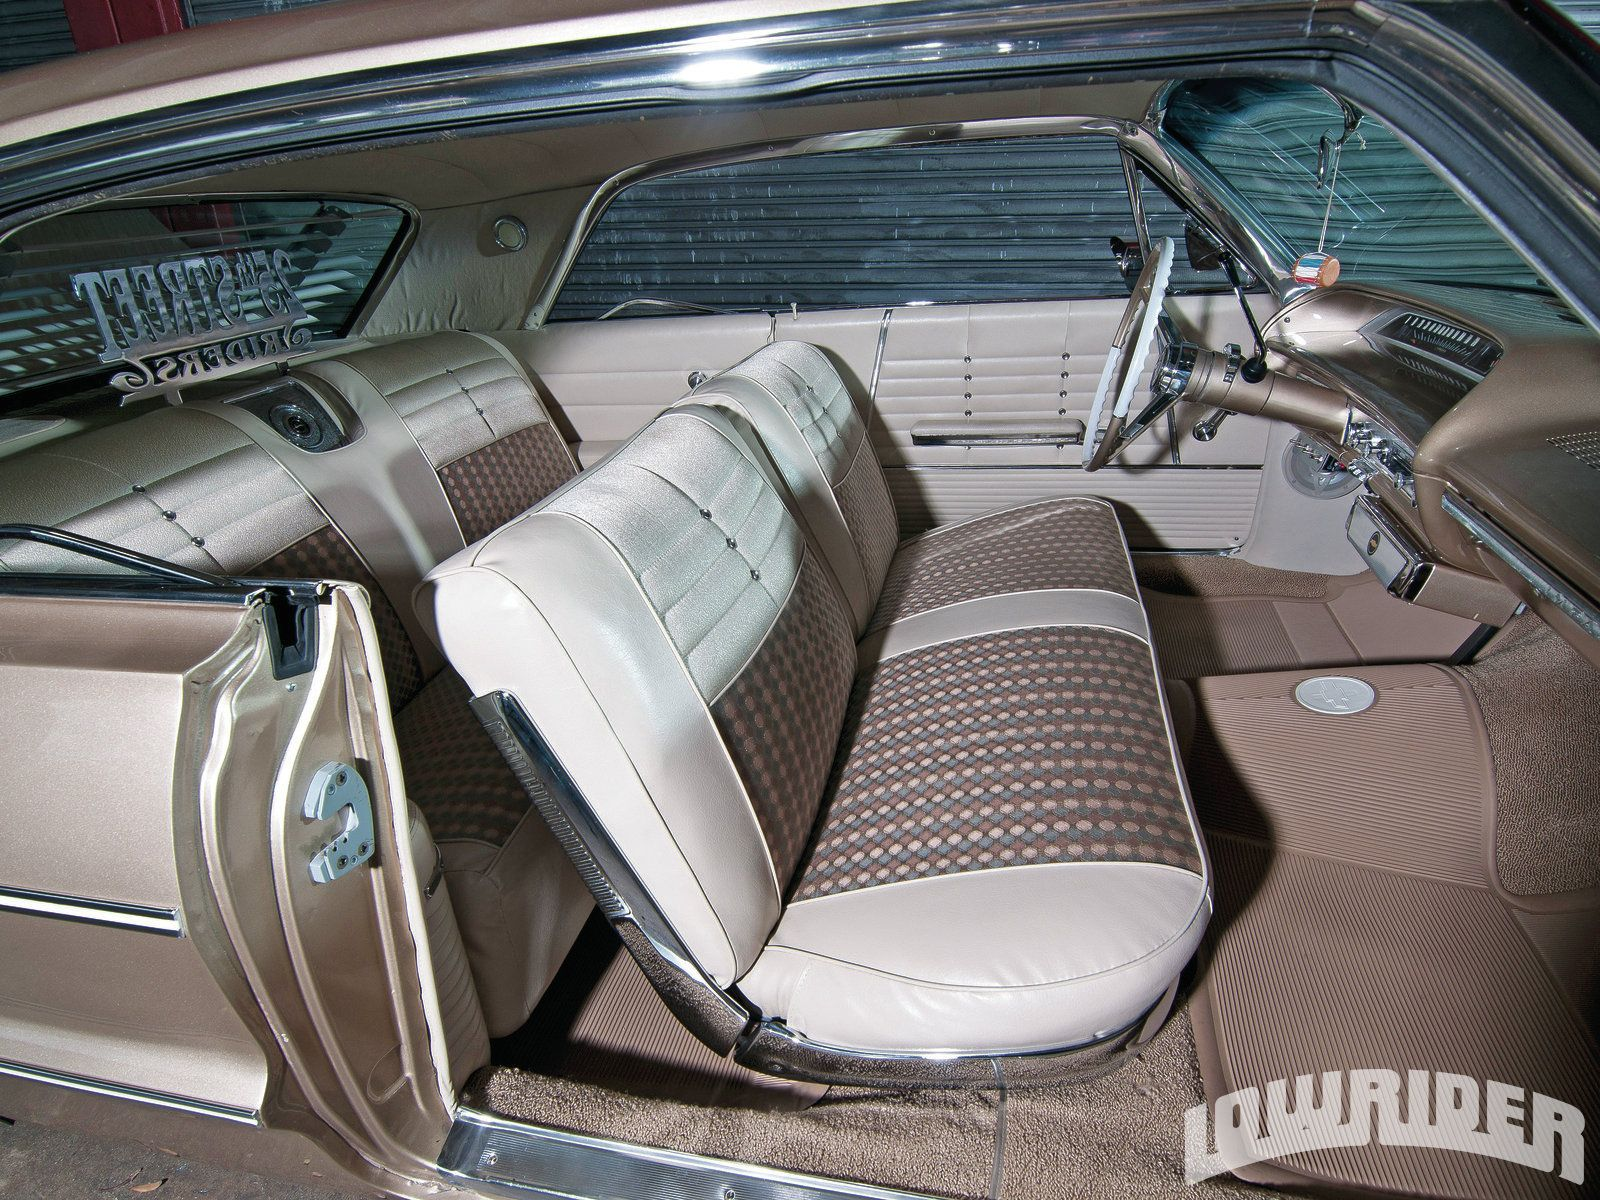 Tremendous 1964 Chevrolet Impala Custom Interior Chevrolet Impala Gmtry Best Dining Table And Chair Ideas Images Gmtryco